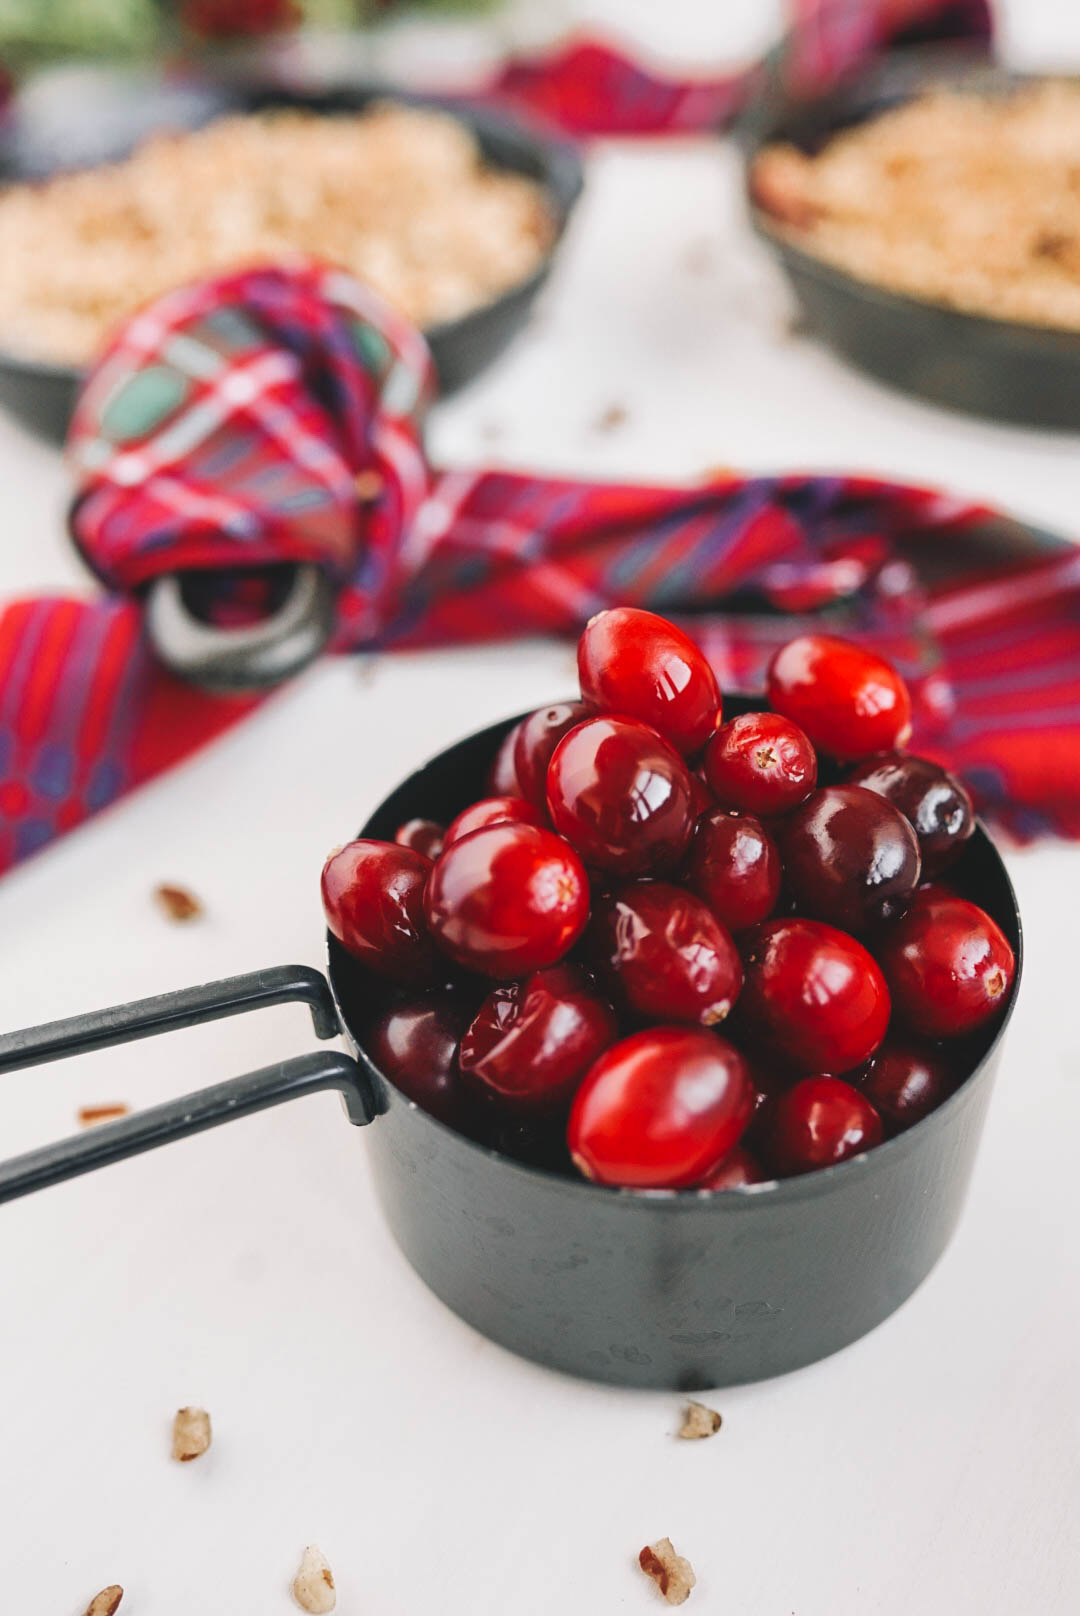 cranberries in black measuring cup skillet with plaid dish towel on white surface